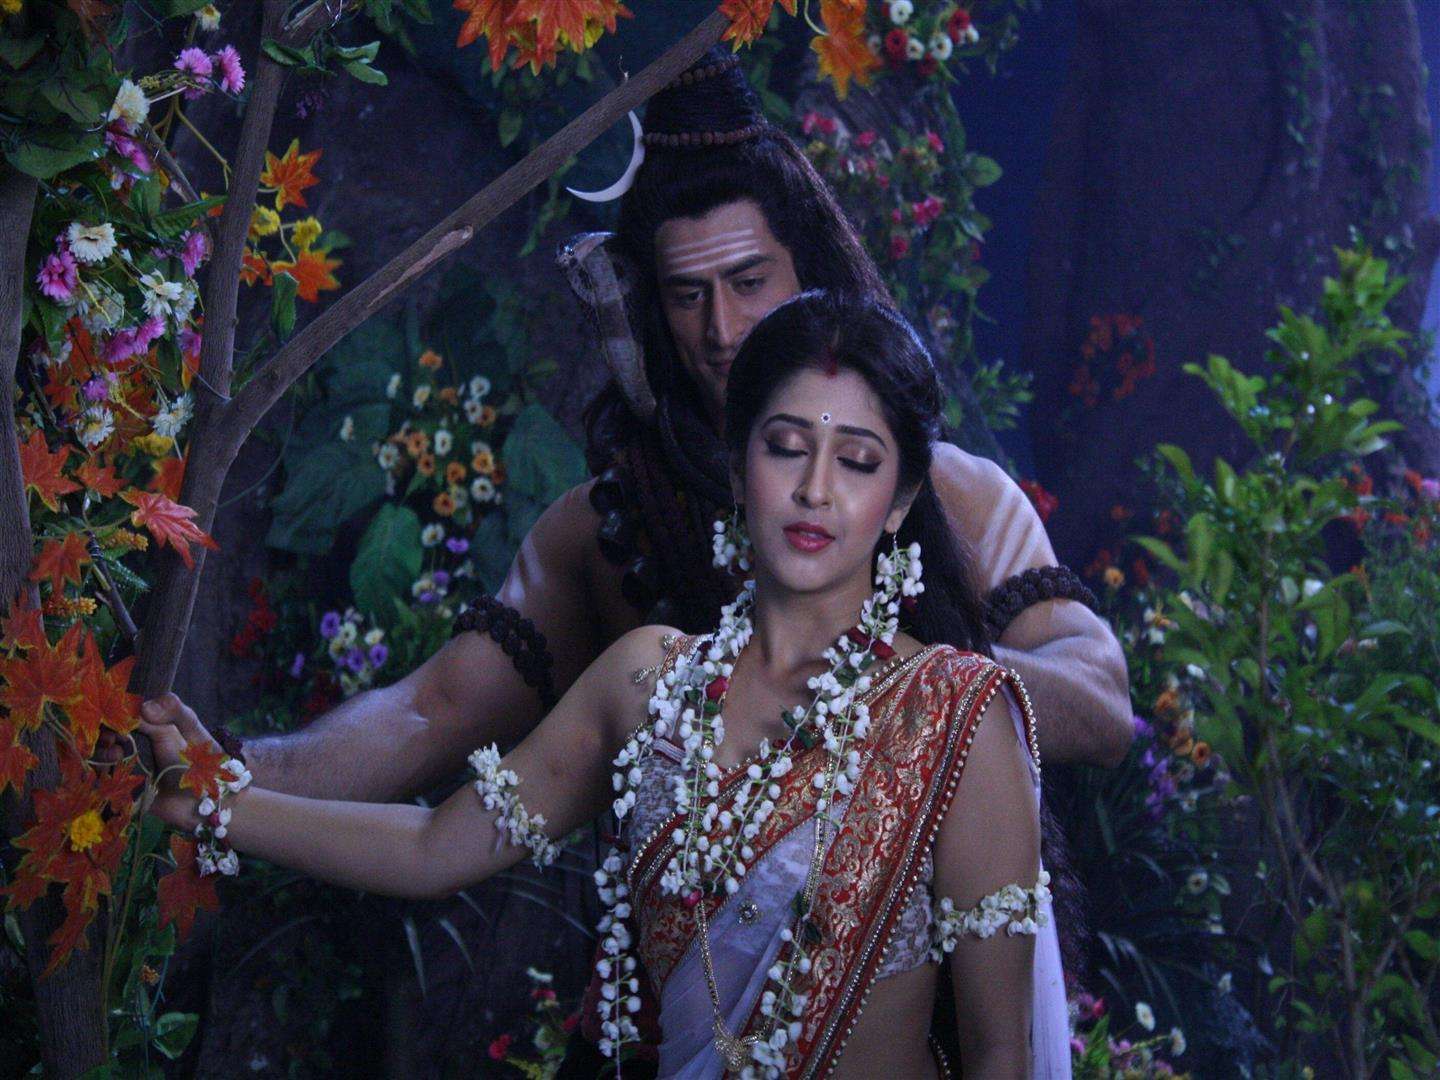 1440x1080 Lord Shiva and Parvati in Devon Ke Dev Mahadev Hindi TV Serial Wallpapers